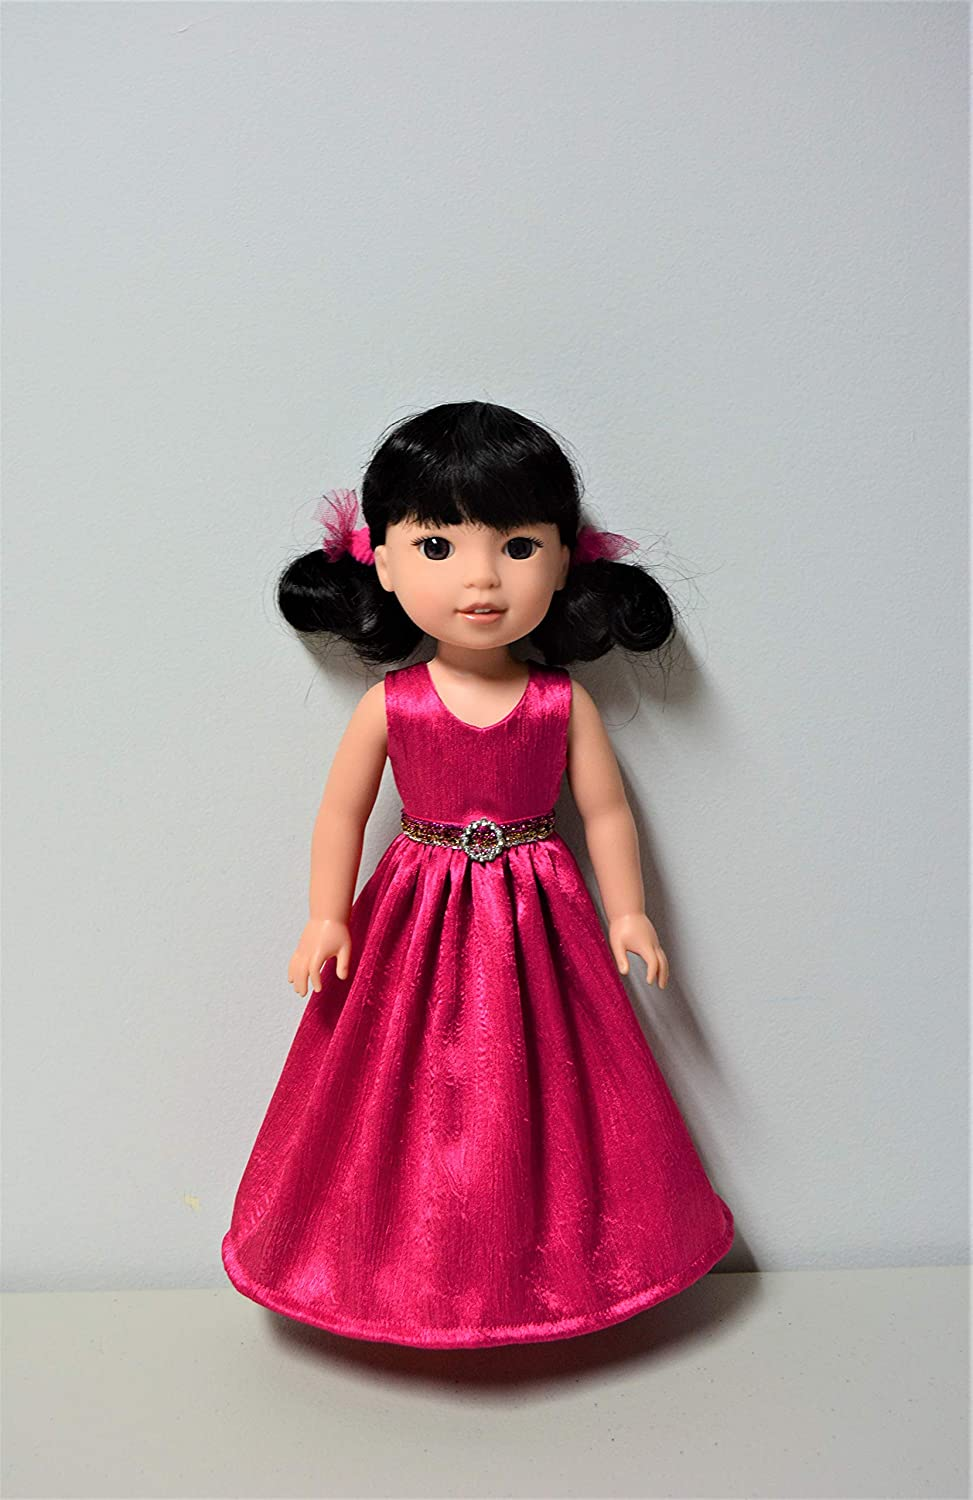 Handmade Doll Clothes Dress Gown fit 14.5 American Girl Wellie Wishers and H4H Dolls